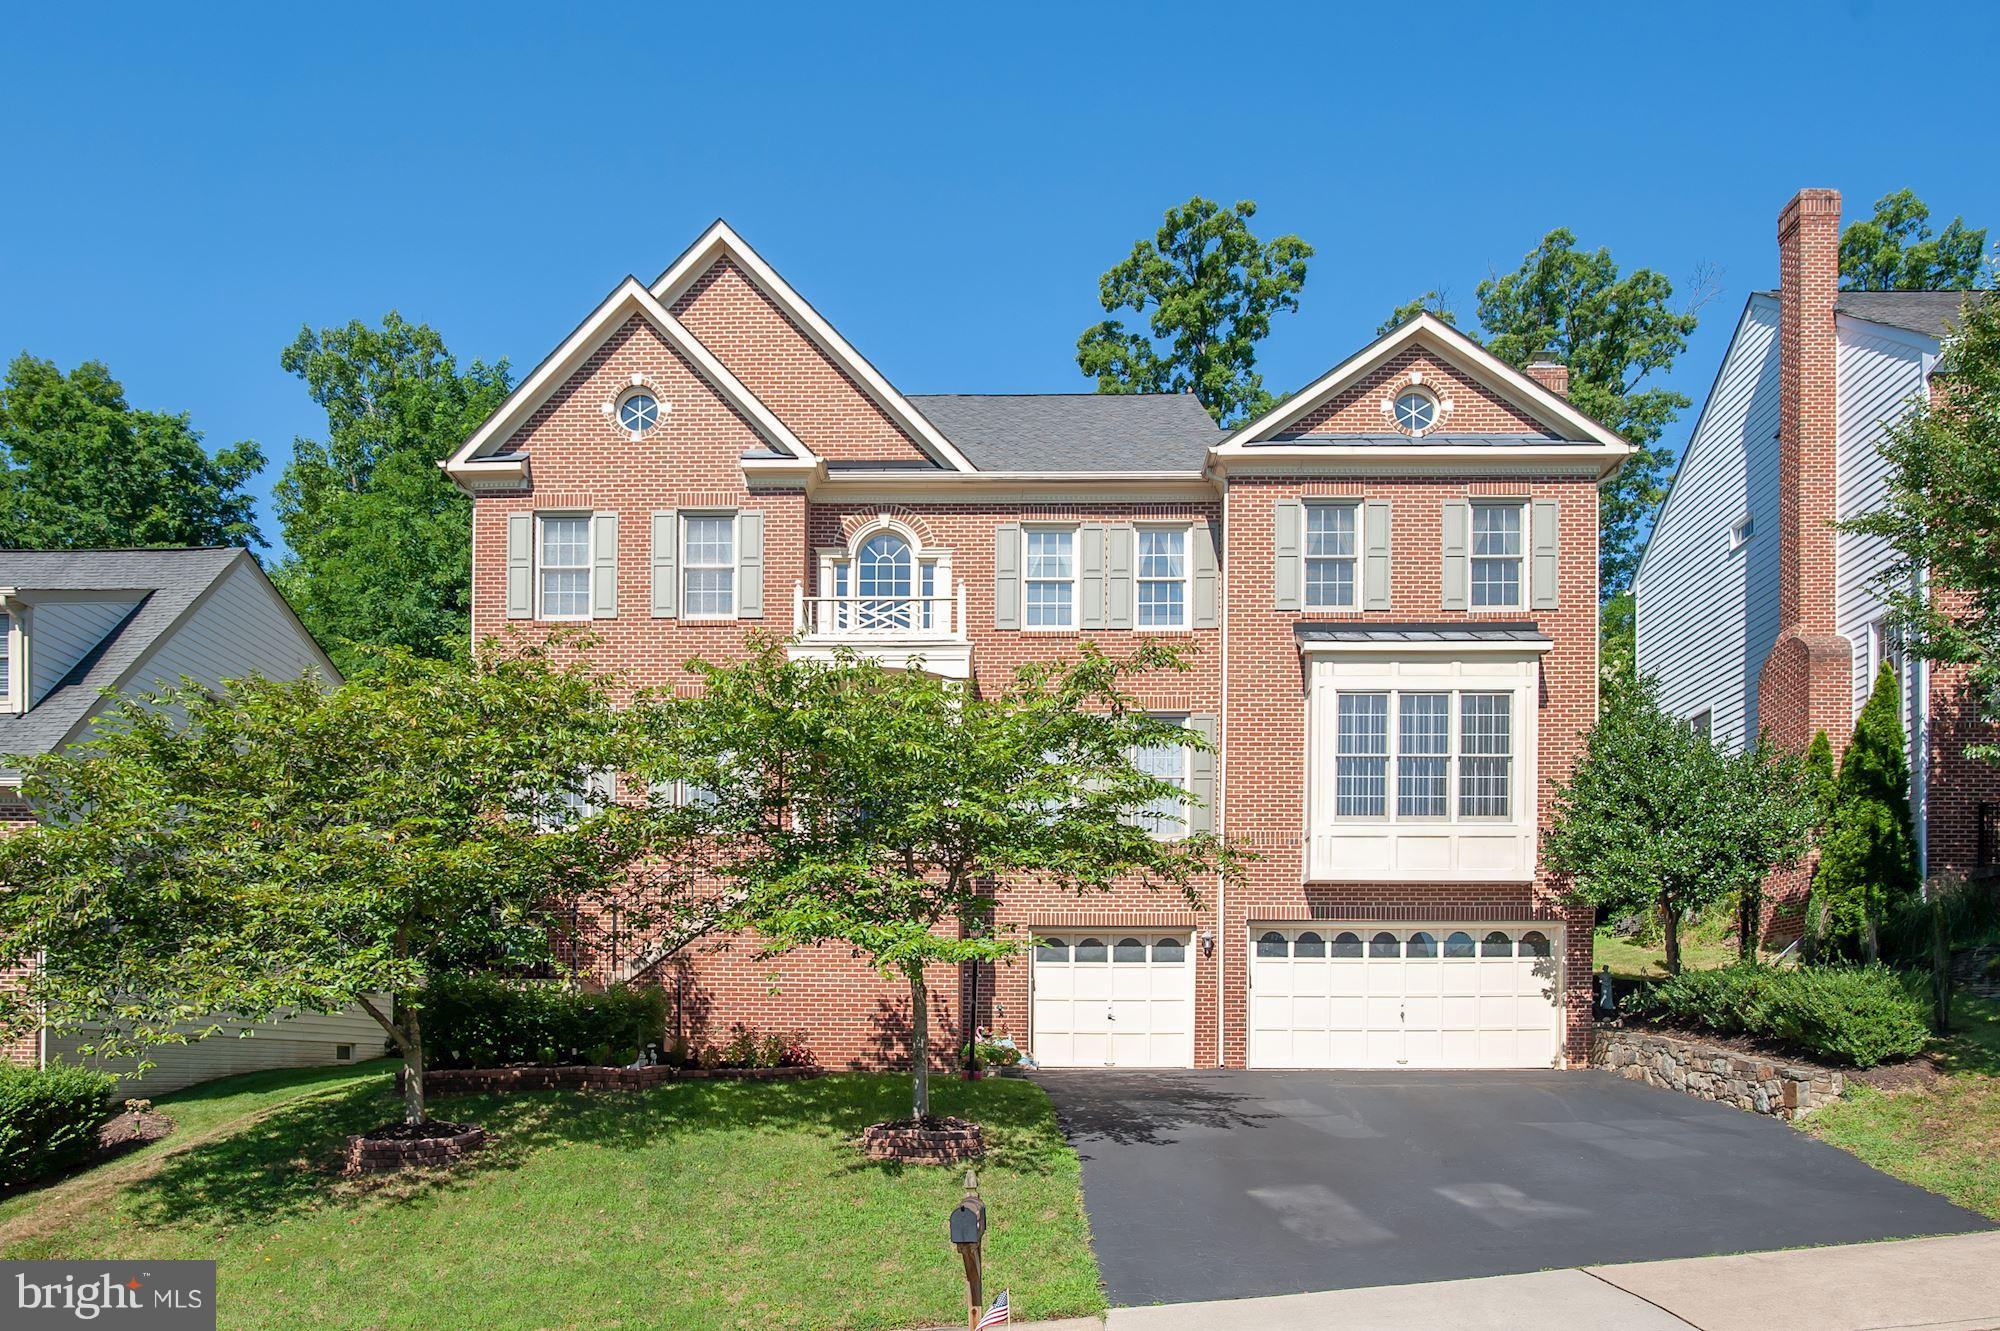 Spectacular 4-lvl 6BR 5.5BA SFH showcases hardwoods, high ceilings, huge basement & inviting KIT w/new stainless apps & opens to Morning Rm. Spacious Family Rm offers fireplace & bay window. Impressive MBR boasts cathedral ceiling, sitting area, walk-in & MBA w/Jacuzzi soaking tub, sep shwr, 2 vanities & water closet. 3 add~l BRs & washer/dryer on MBR lvl. 2 BRs on 4th floor. Near 95/495!